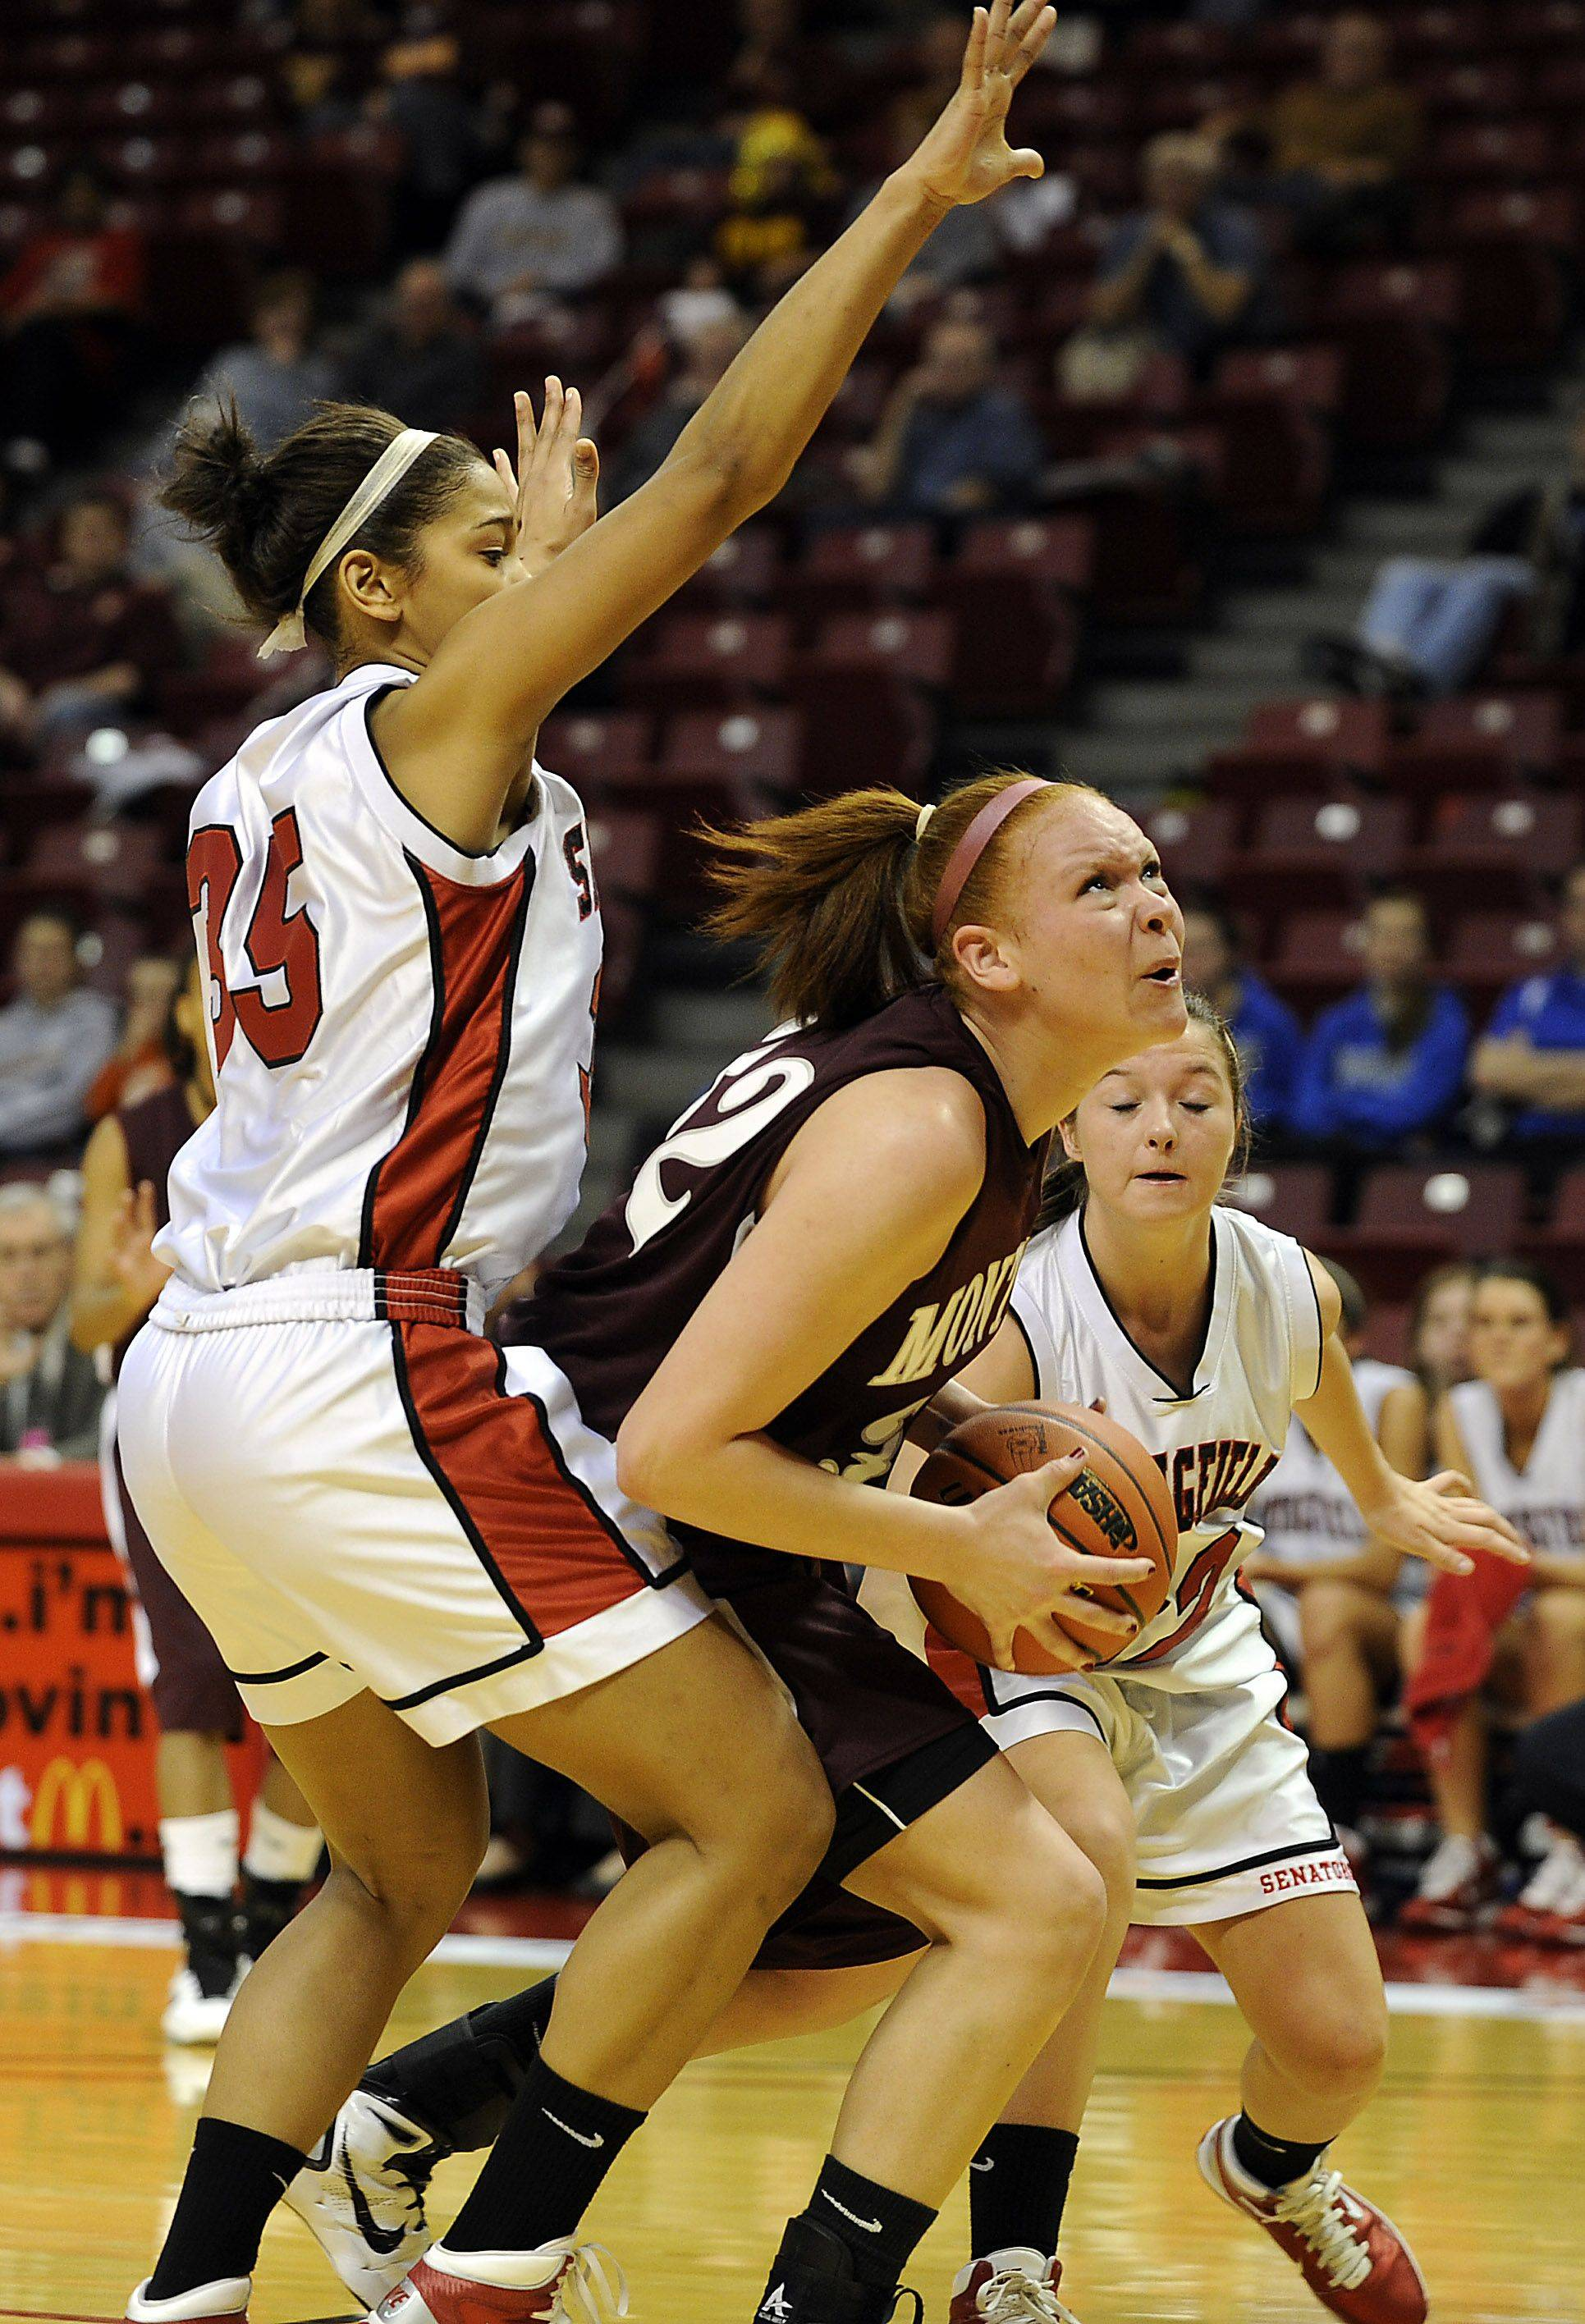 Montini's Whitney Adams plows through Springfield's defense of Amber Cason in the first half of girls basketball action at Redbird Arena on Friday.